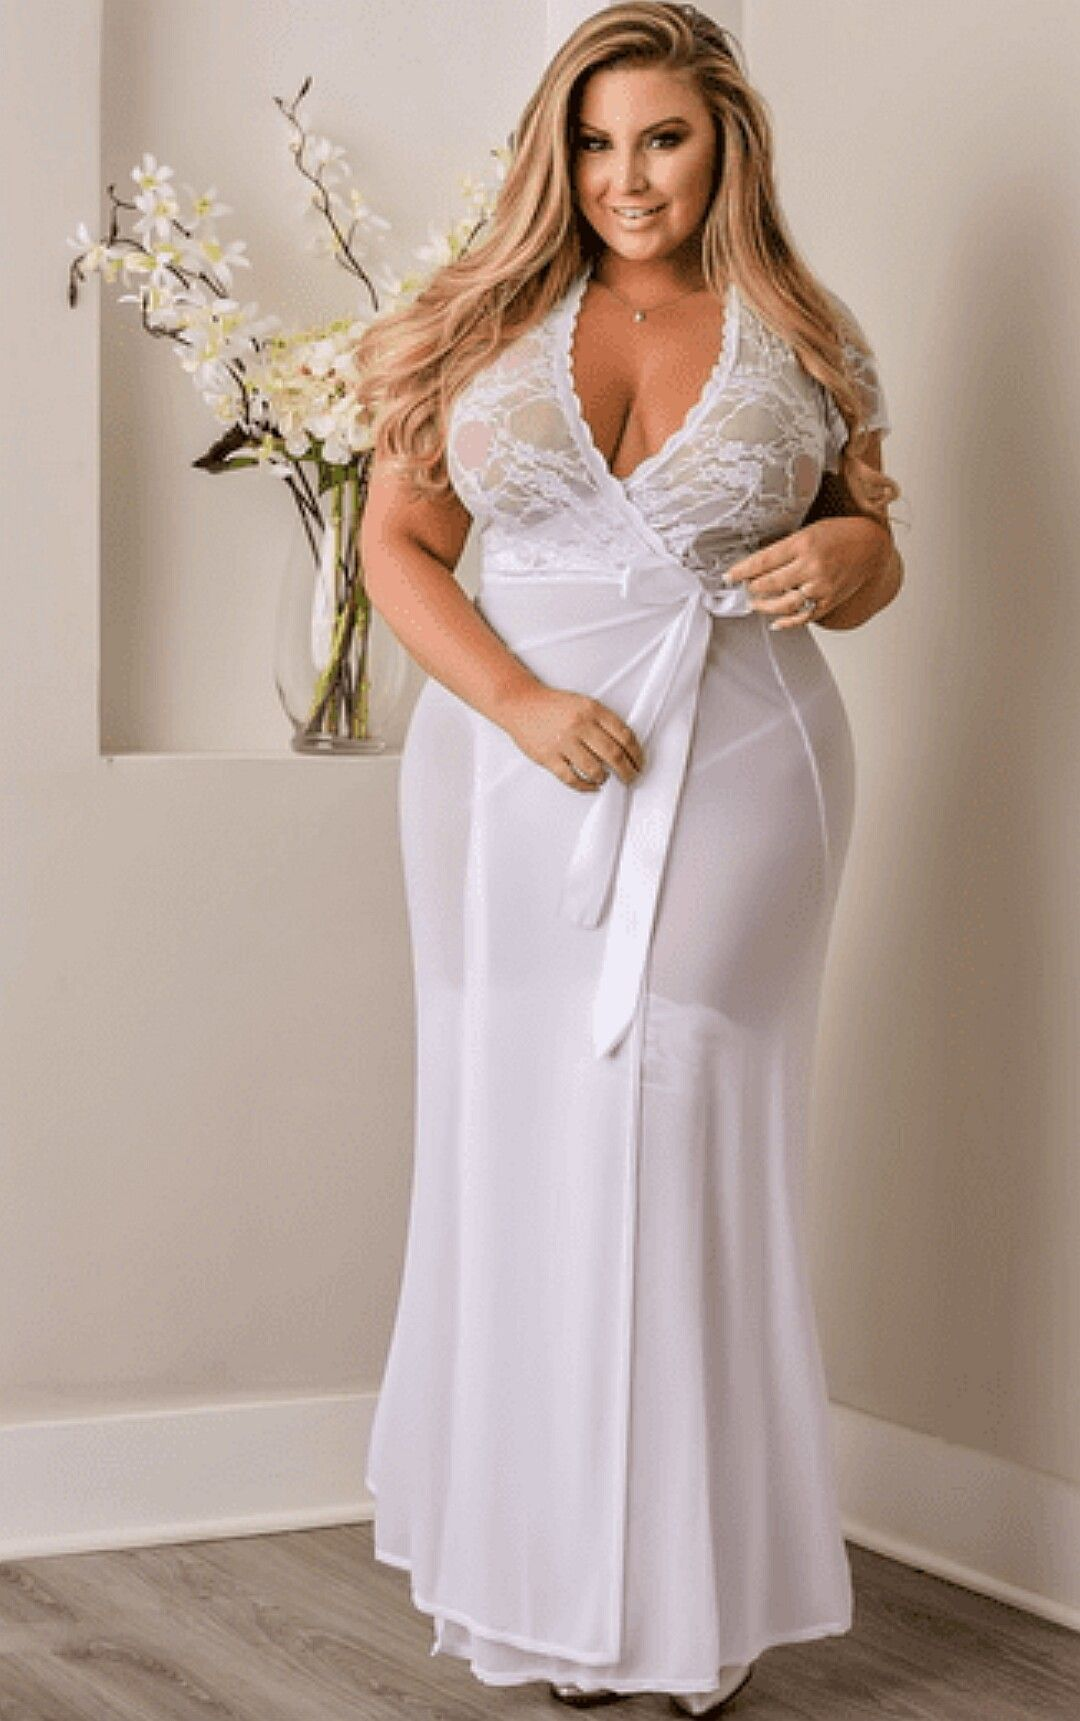 74258faf8c9 Lingerie store with the biggest selection of lingerie online. Buy bras